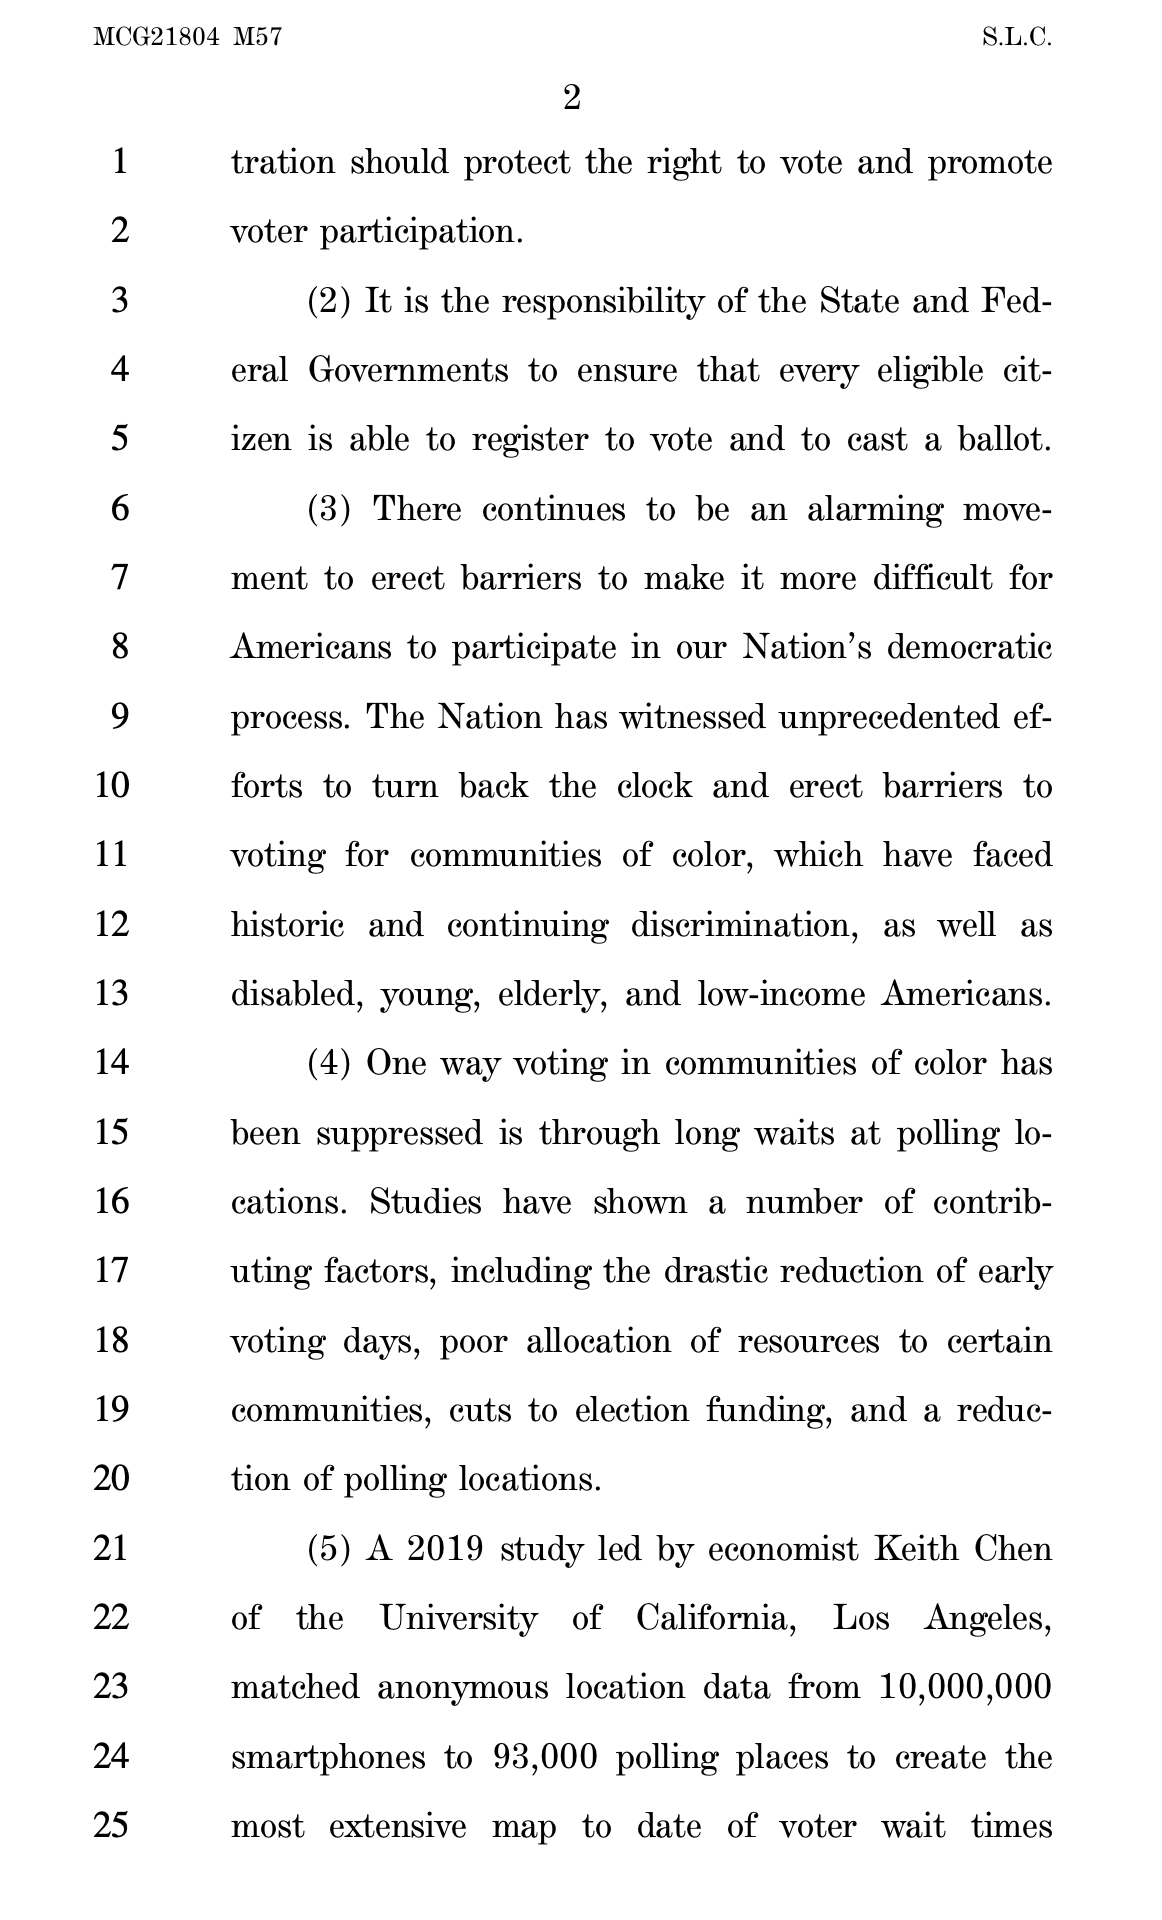 Screen-Shot-2021-06-17-at-4.02.24-PM Democrats Introduces Law To Guarantee Vote Within 30 Minutes Corruption Crime Featured Politics Top Stories